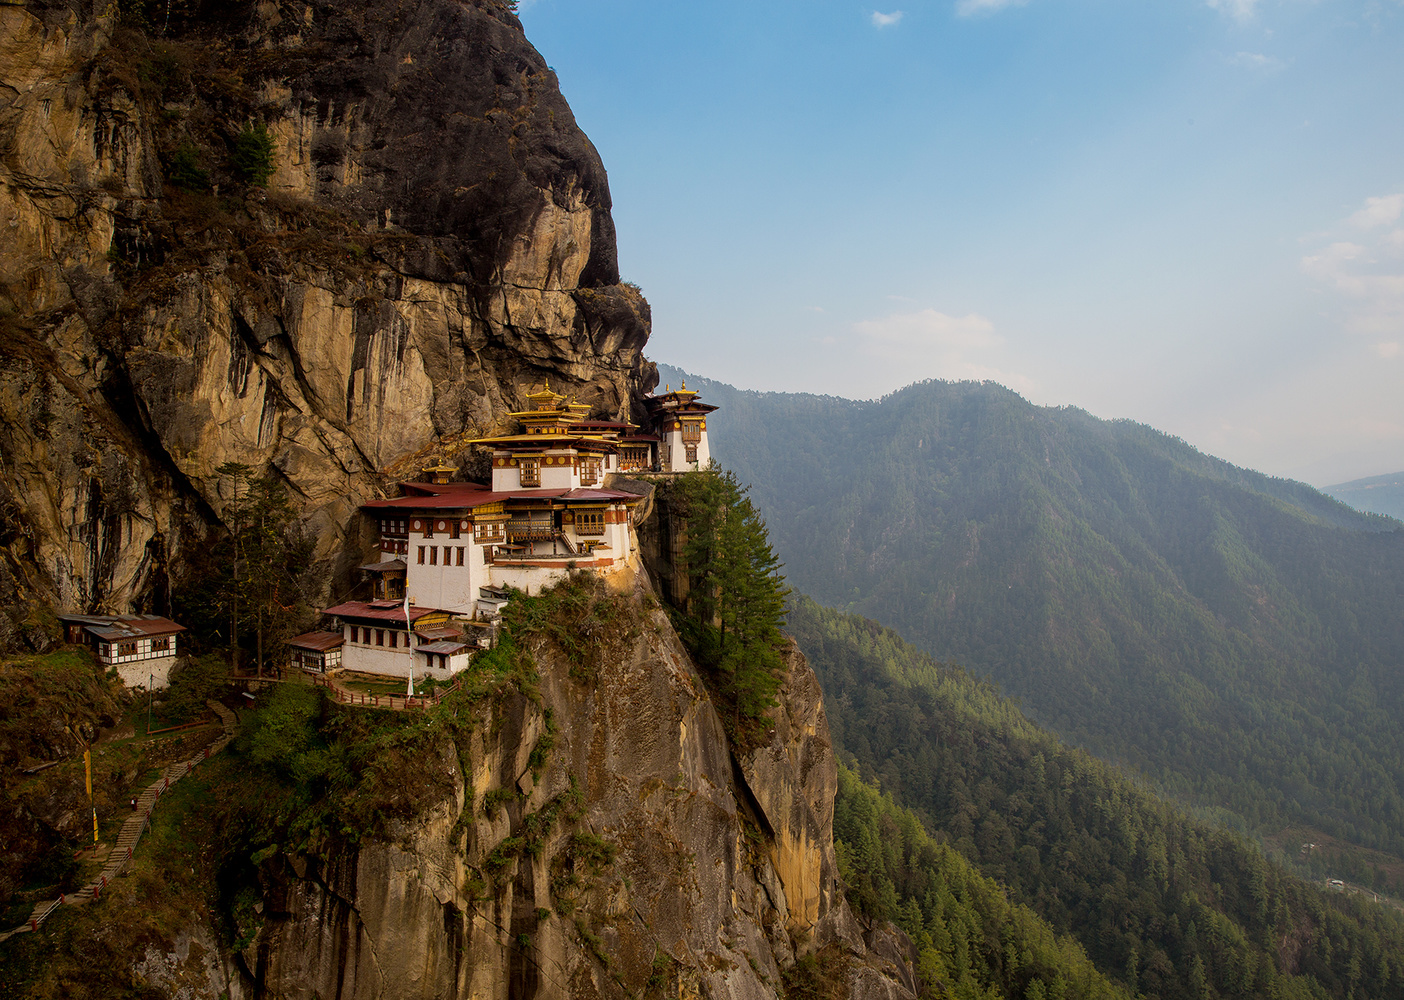 Monastery clinging to the edge of a cliff.